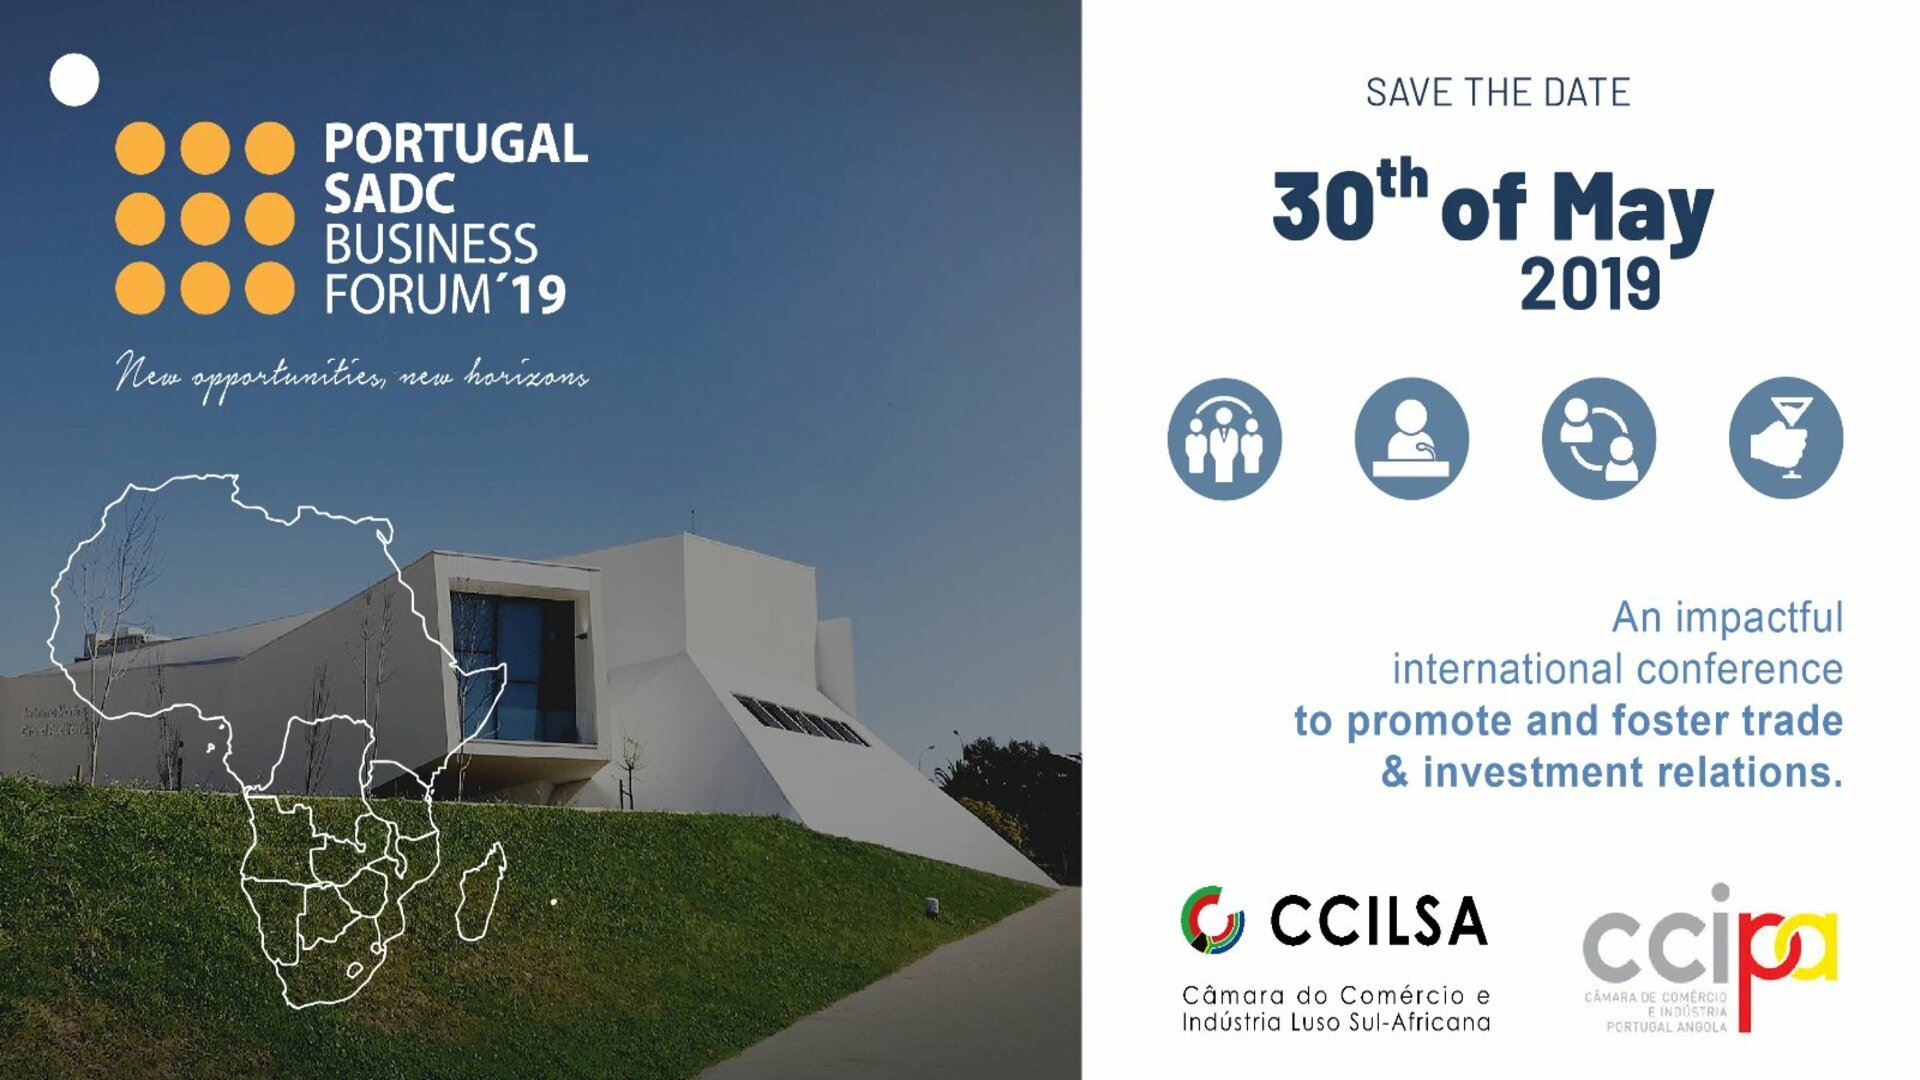 Portugal — SADC Business Forum